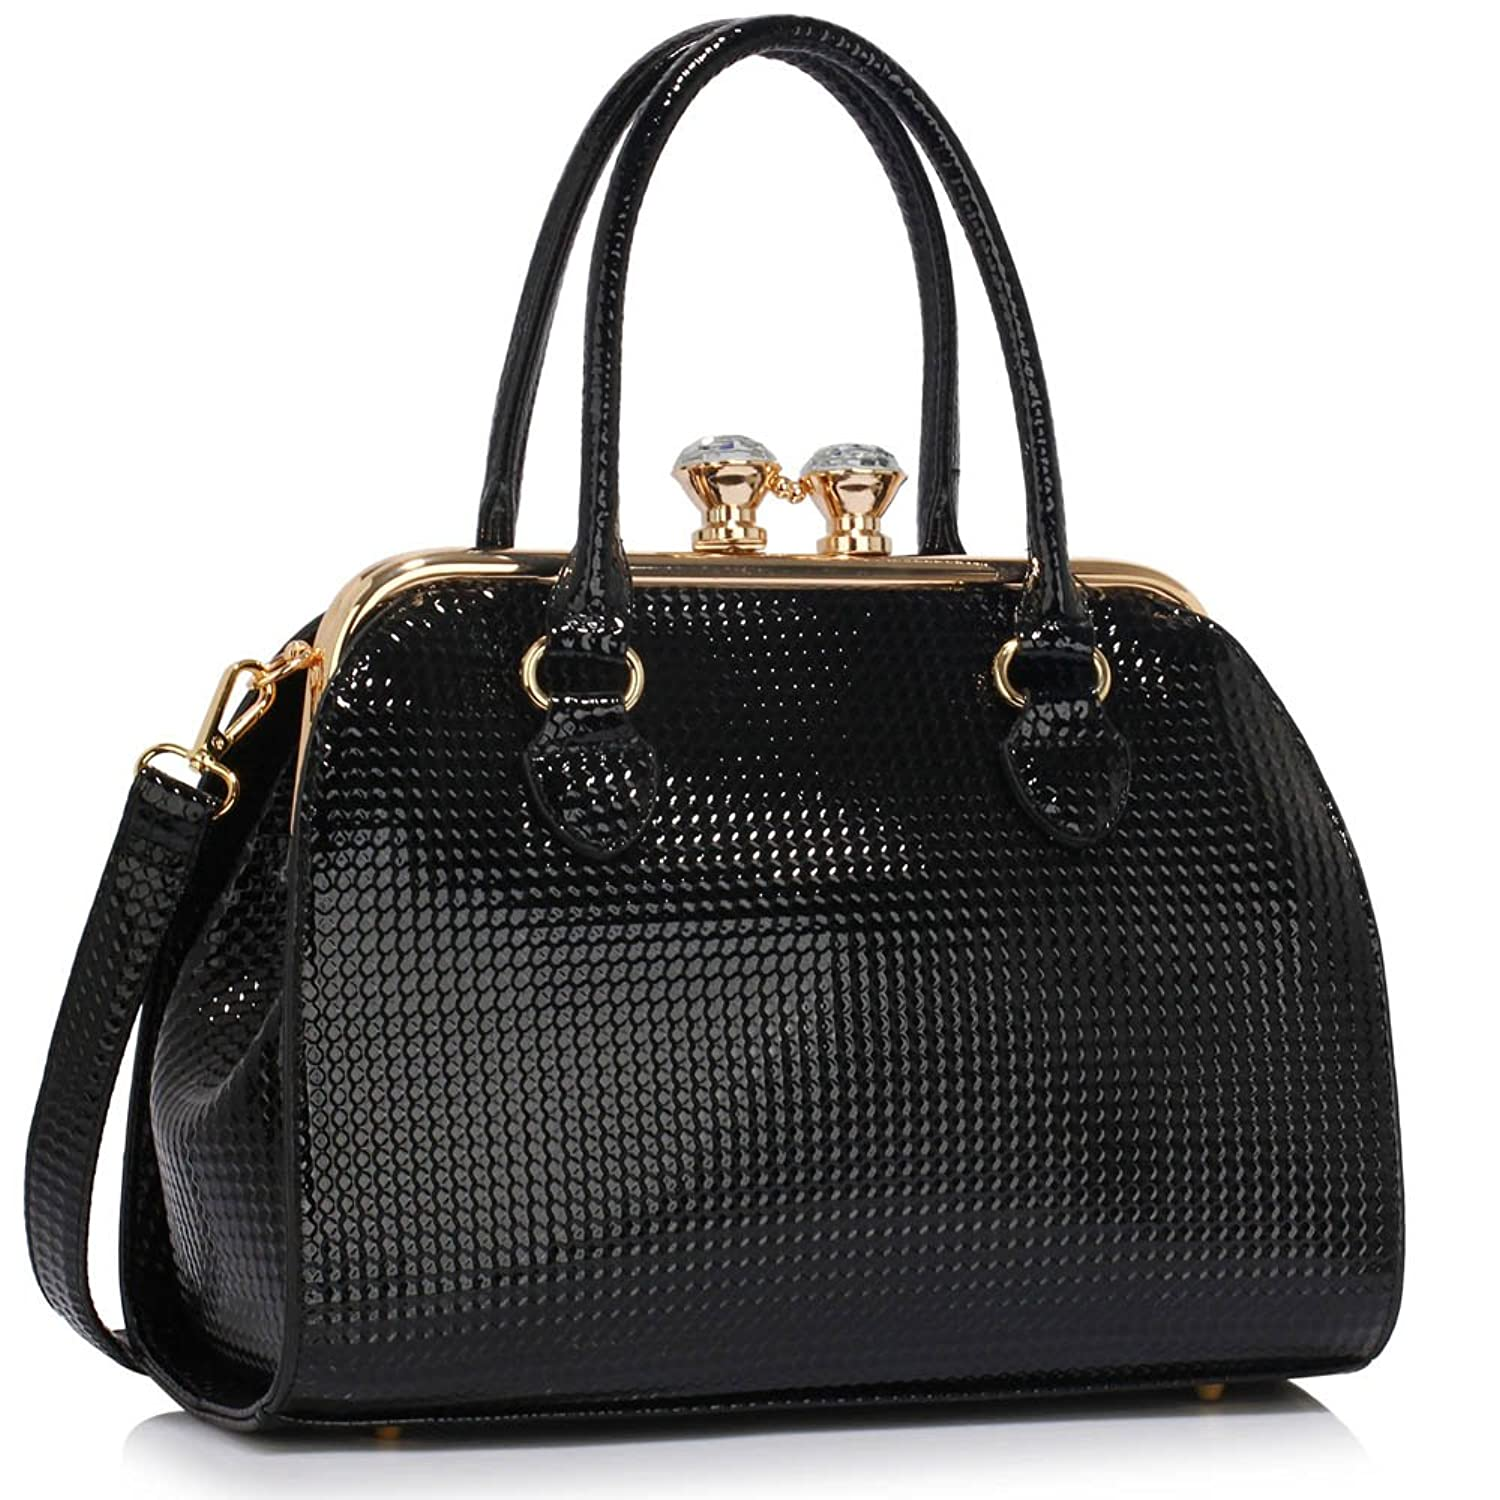 Ladies Designer Bags - Fashion Handbags